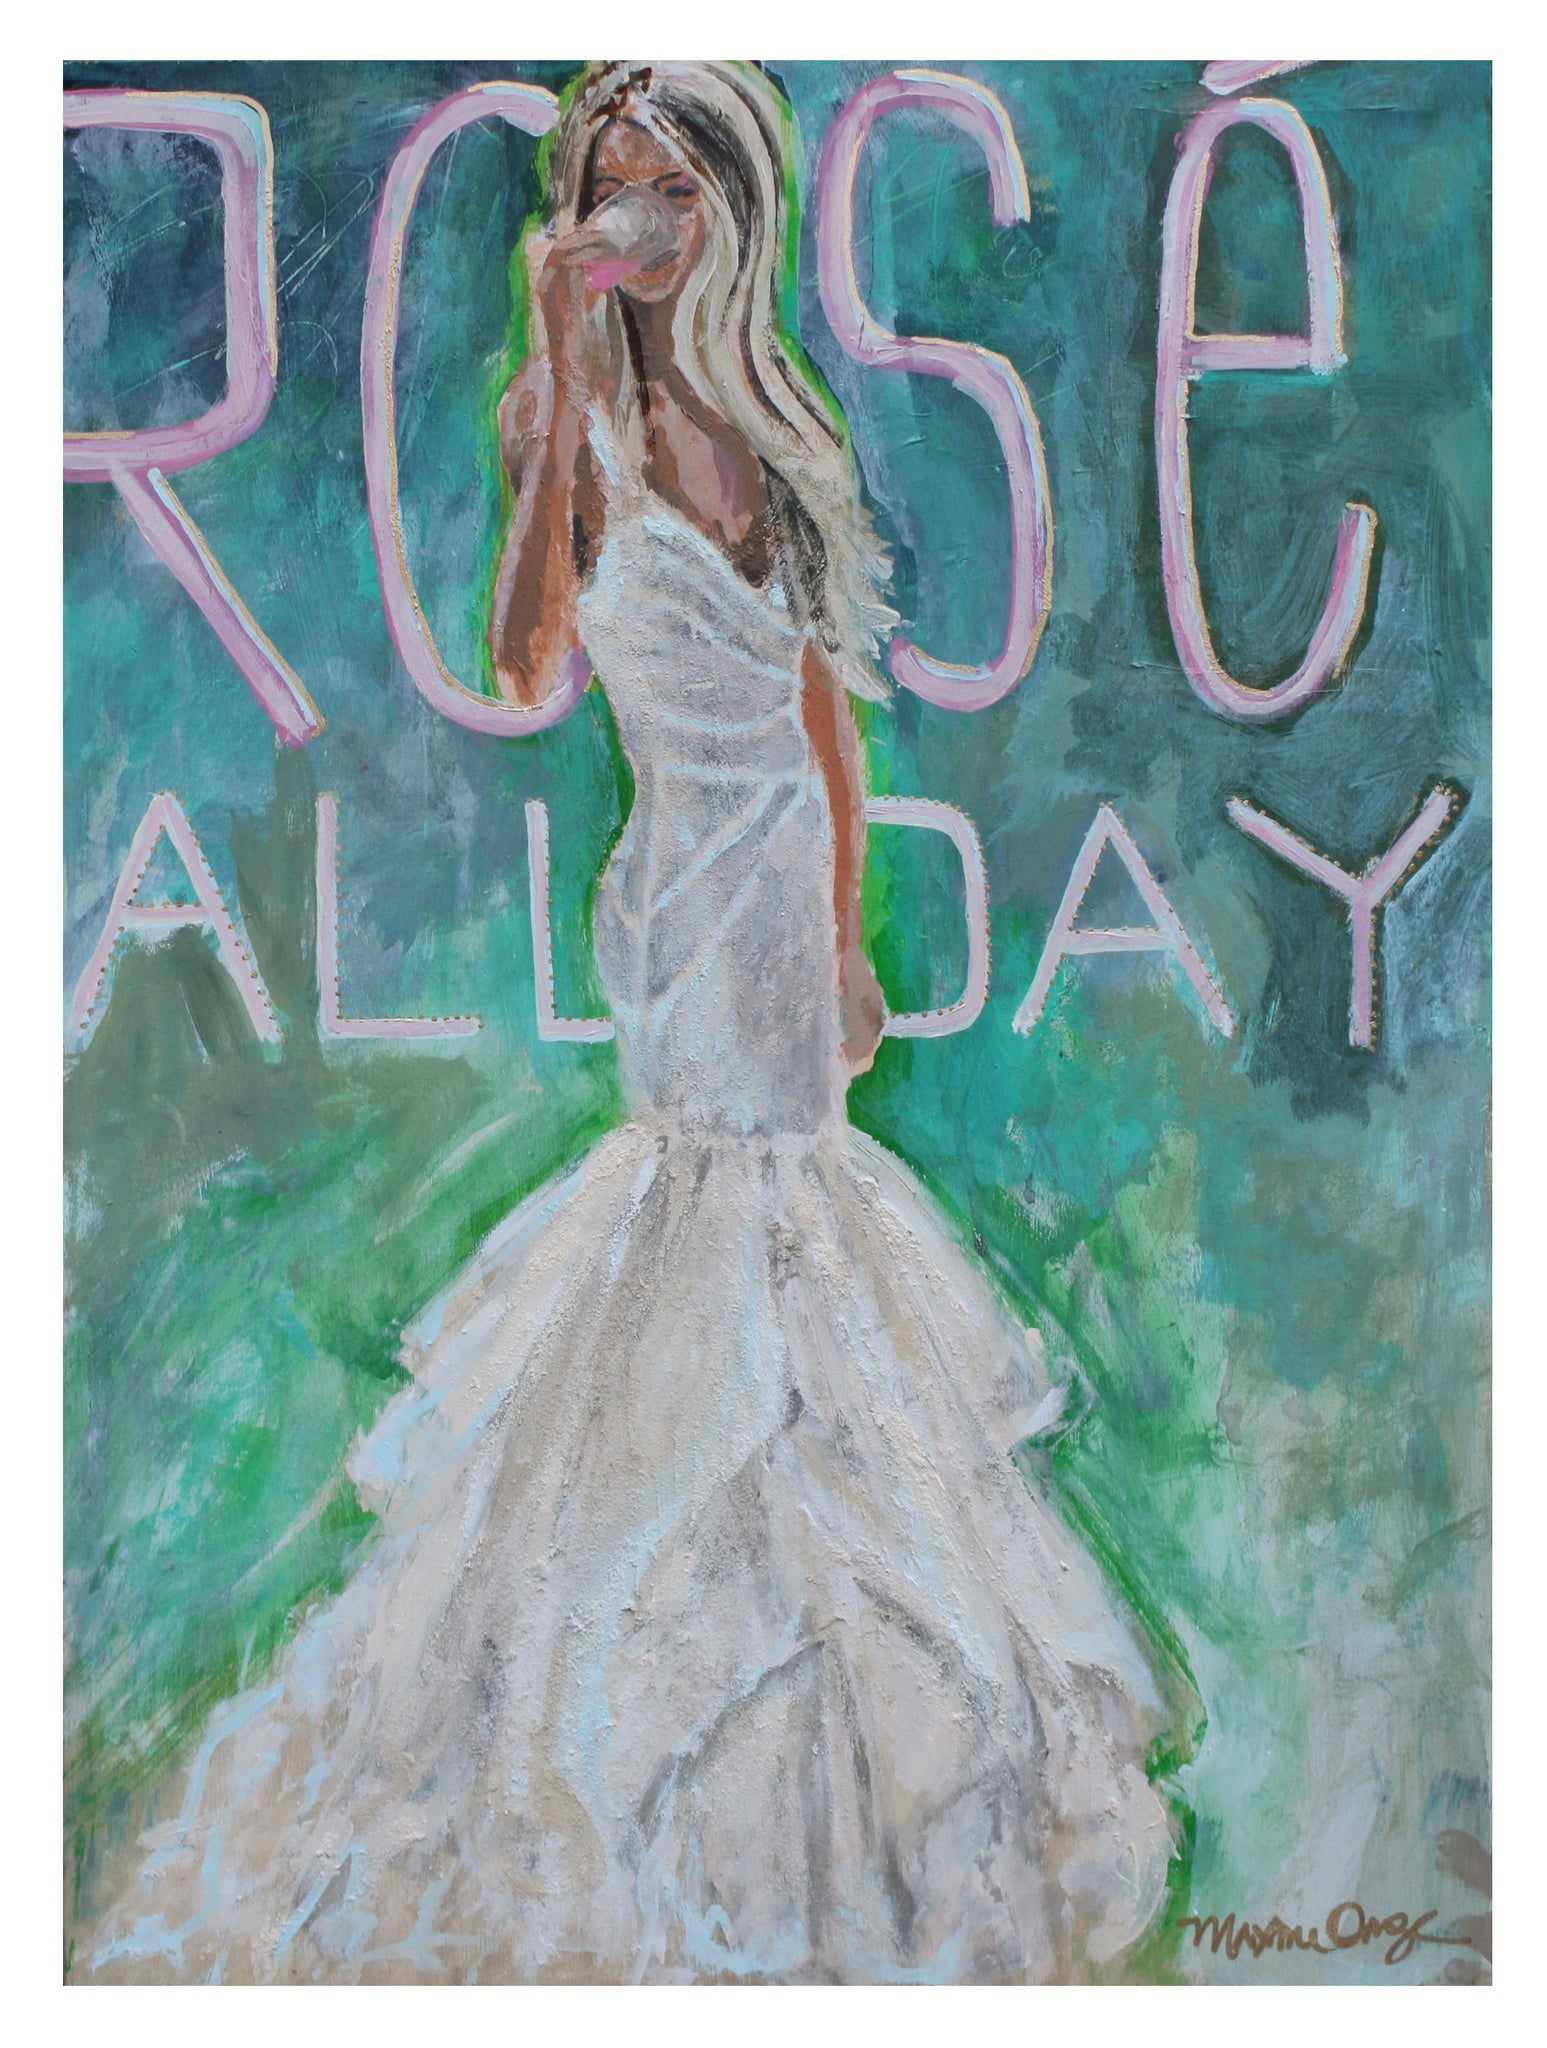 Rosé All Day - maxine orange - Original painting